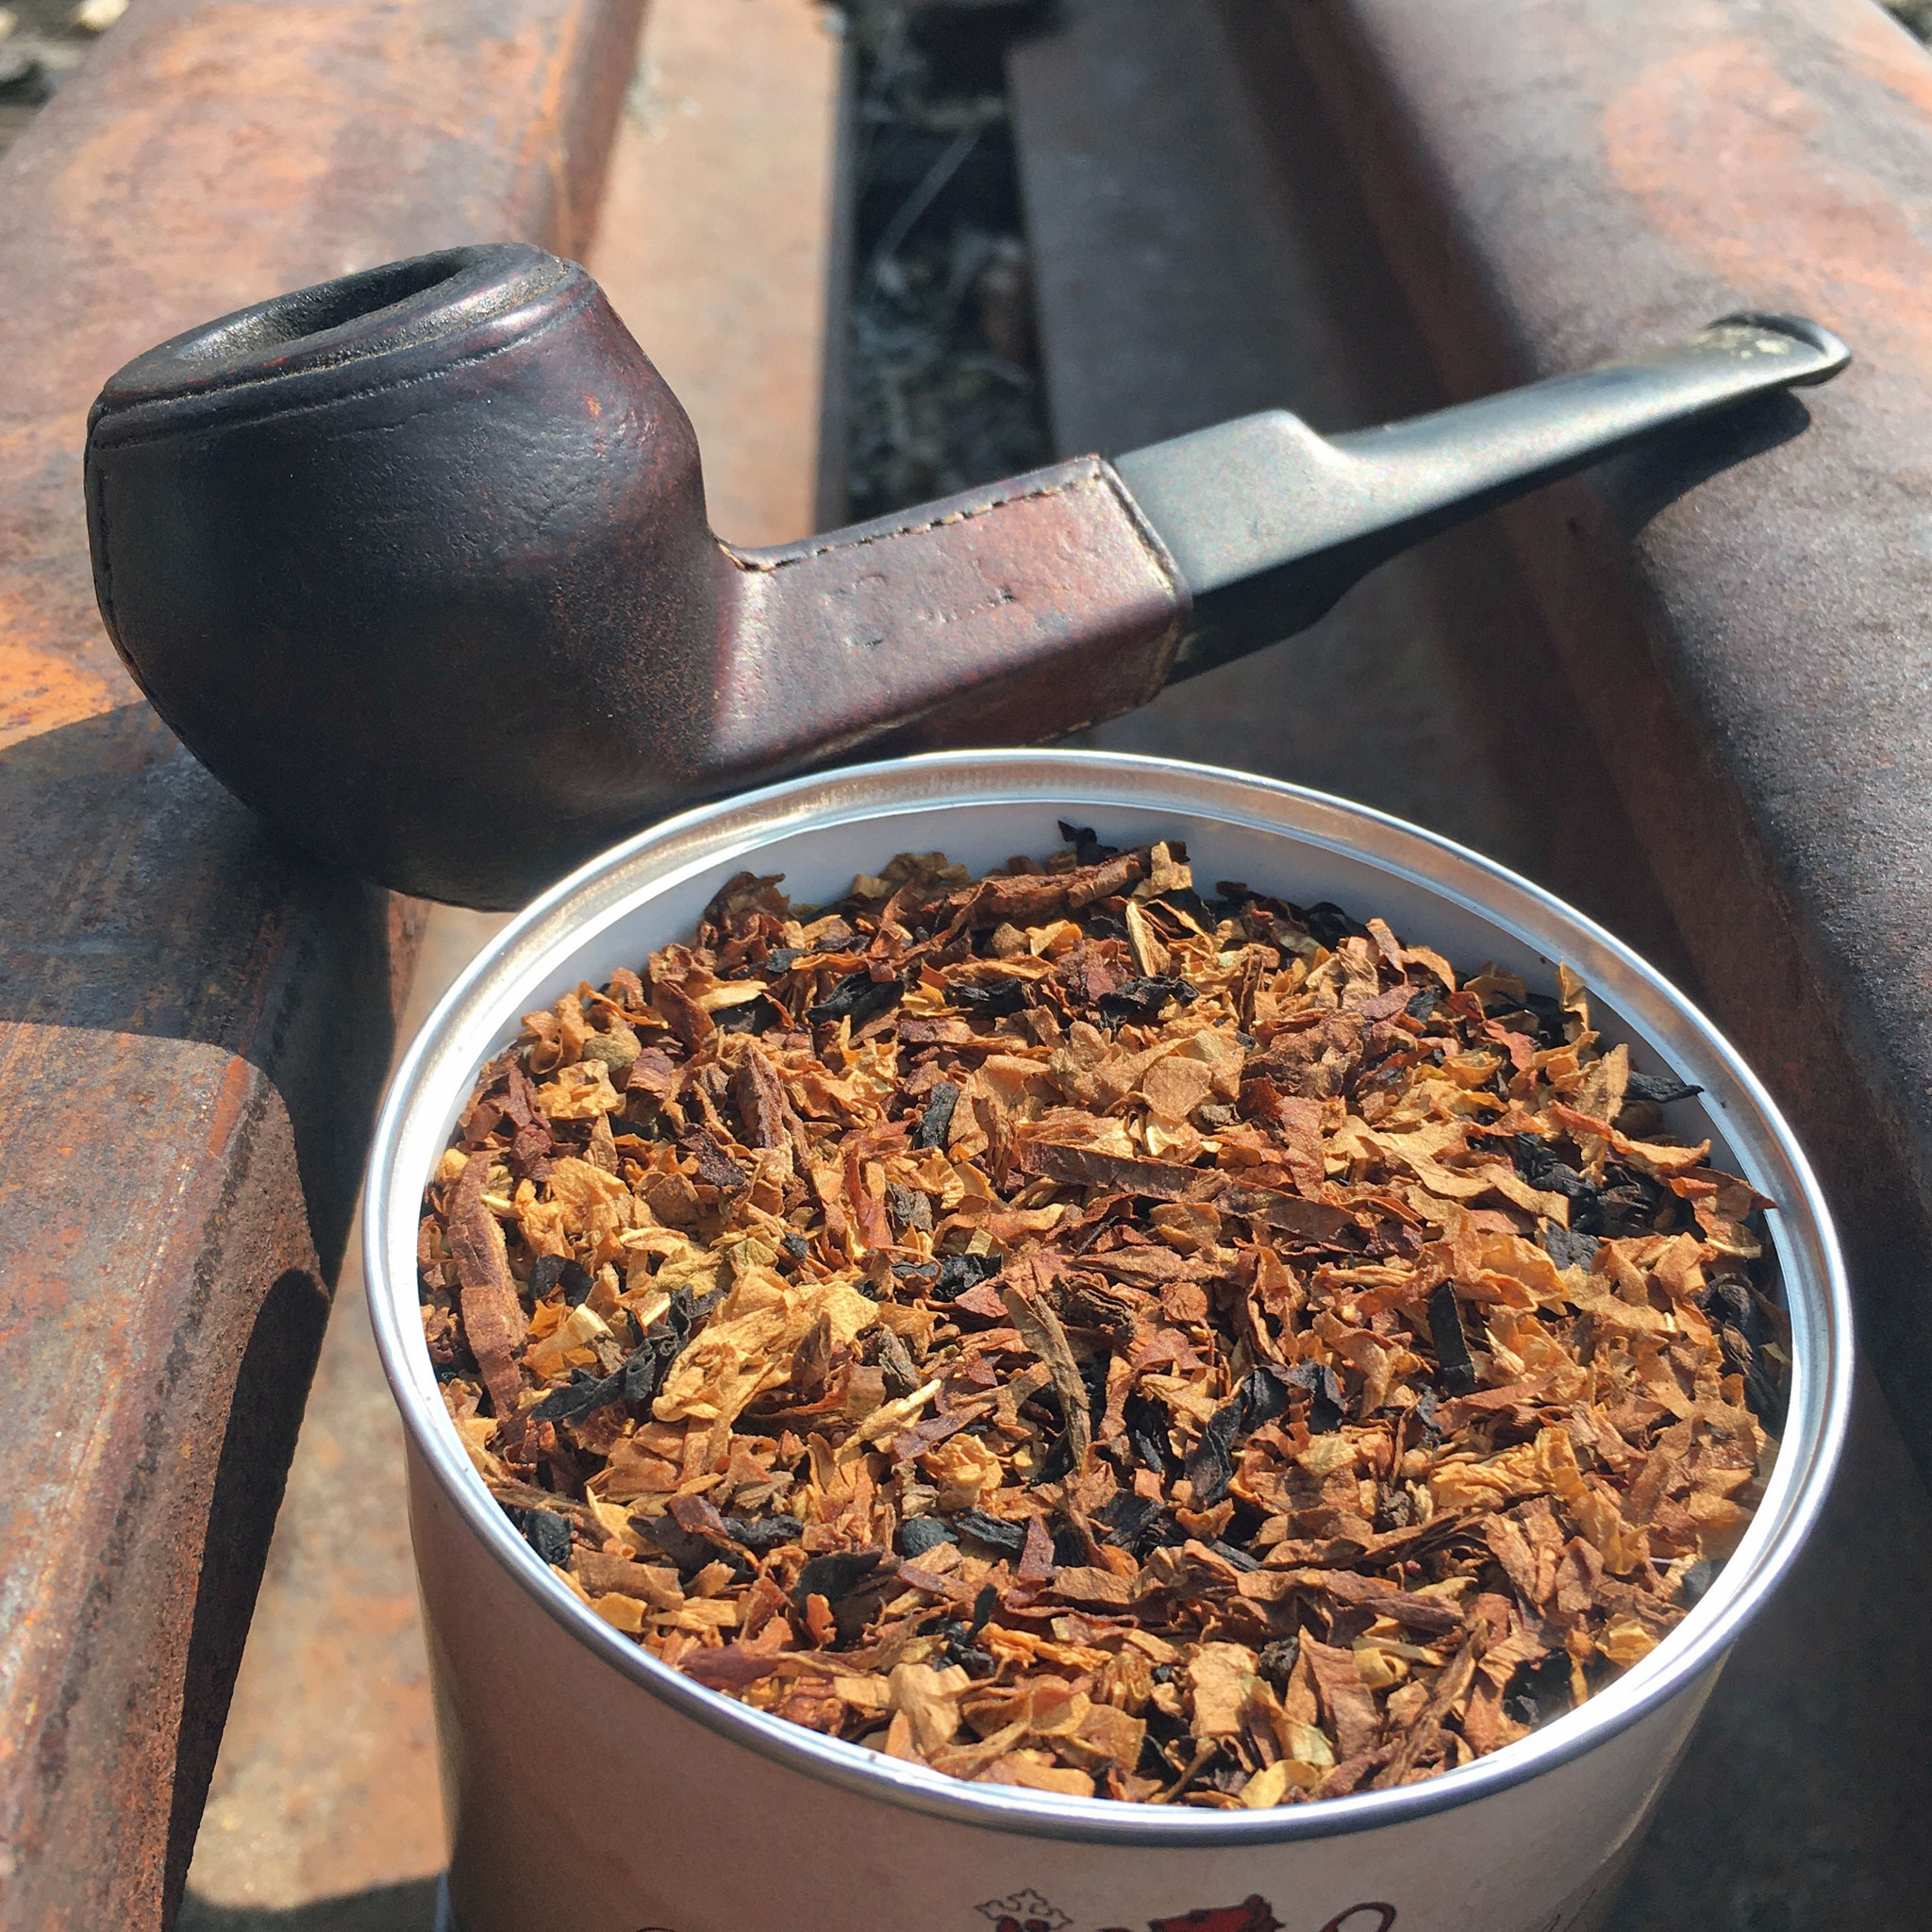 Drucquer & Sons Inns of Court Tobacco Review